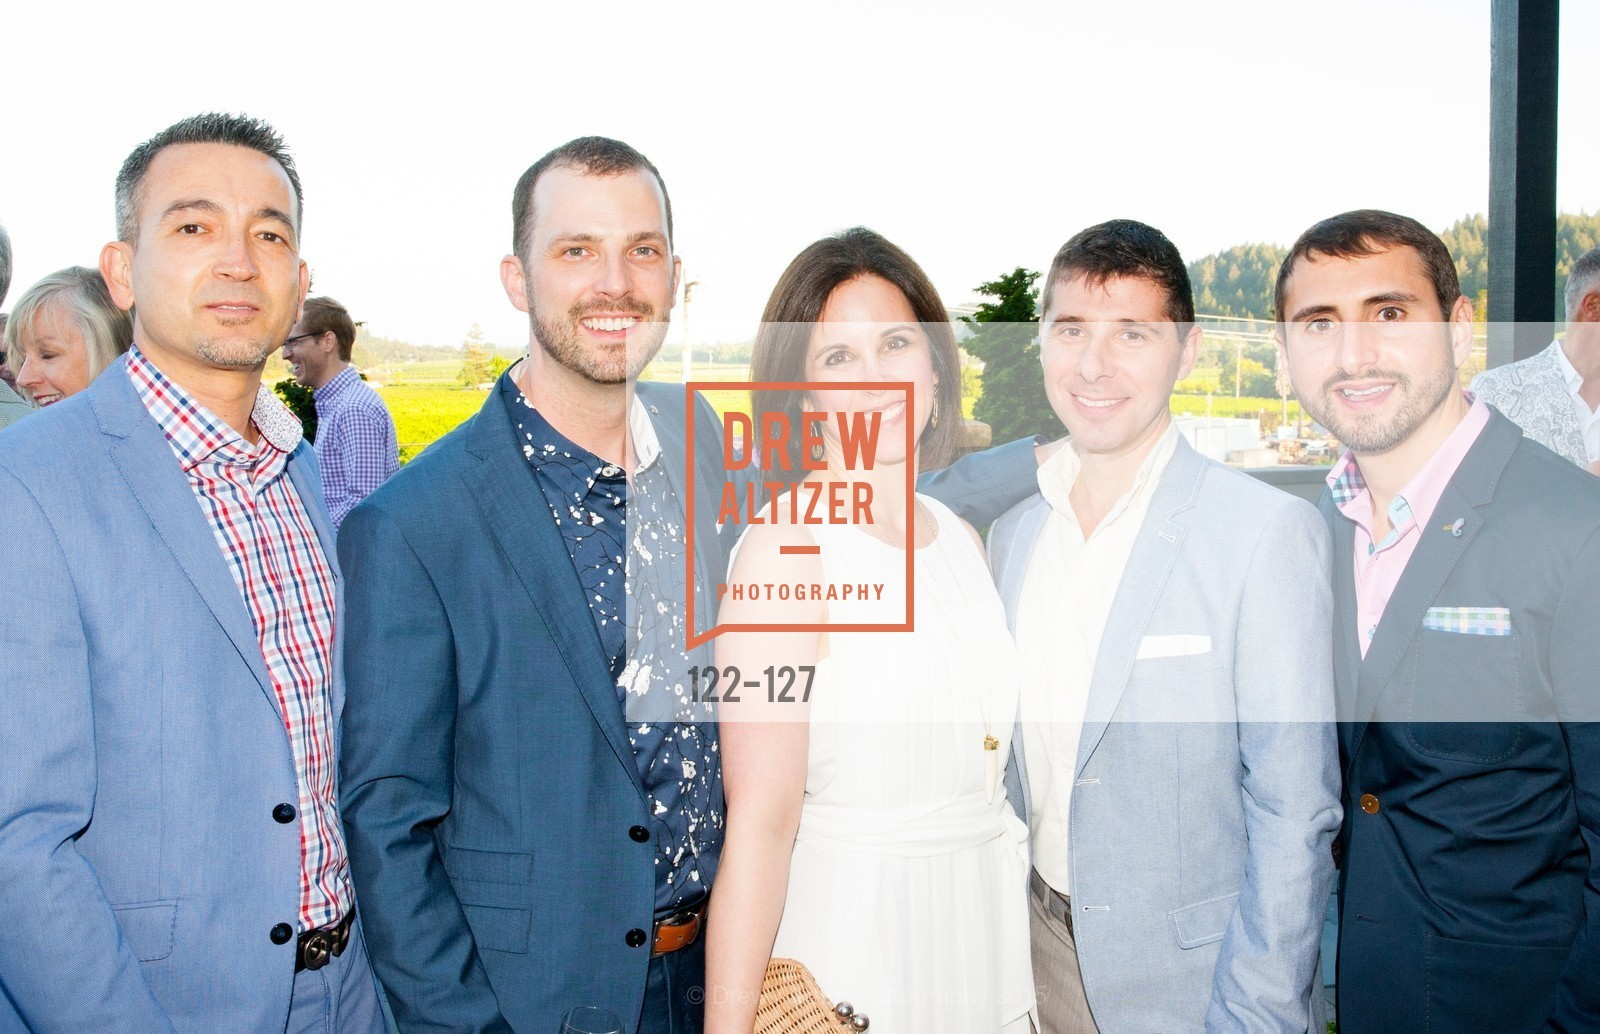 Chris Orsine, Thomas Magnani, Ellen Fleishhacker, Zack Allen, Cassio Alves, An Evening in the Vineyard hosted by JACK CALHOUN & TRENT NORRIS, Jack Calhoun & Trent Norris Vineyard. 3393 Dry Creek Road, Healdsburg CA 95448, May 22nd, 2015,Drew Altizer, Drew Altizer Photography, full-service agency, private events, San Francisco photographer, photographer california